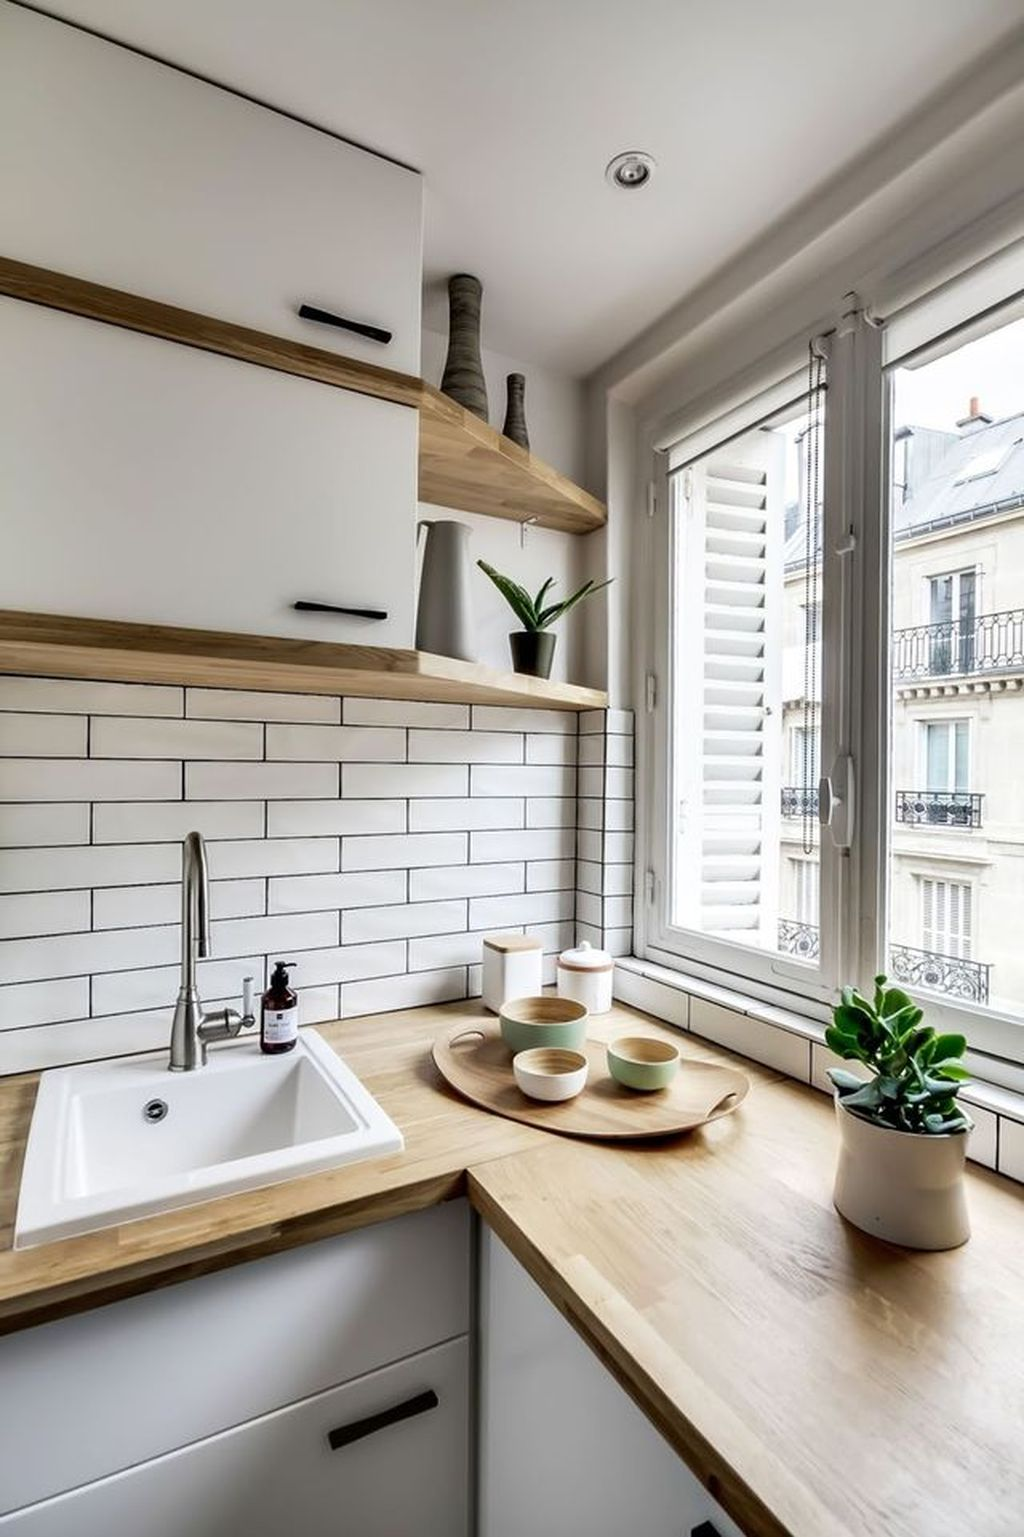 Inspiring And Affordable Decoration Ideas For Small Apartment 75